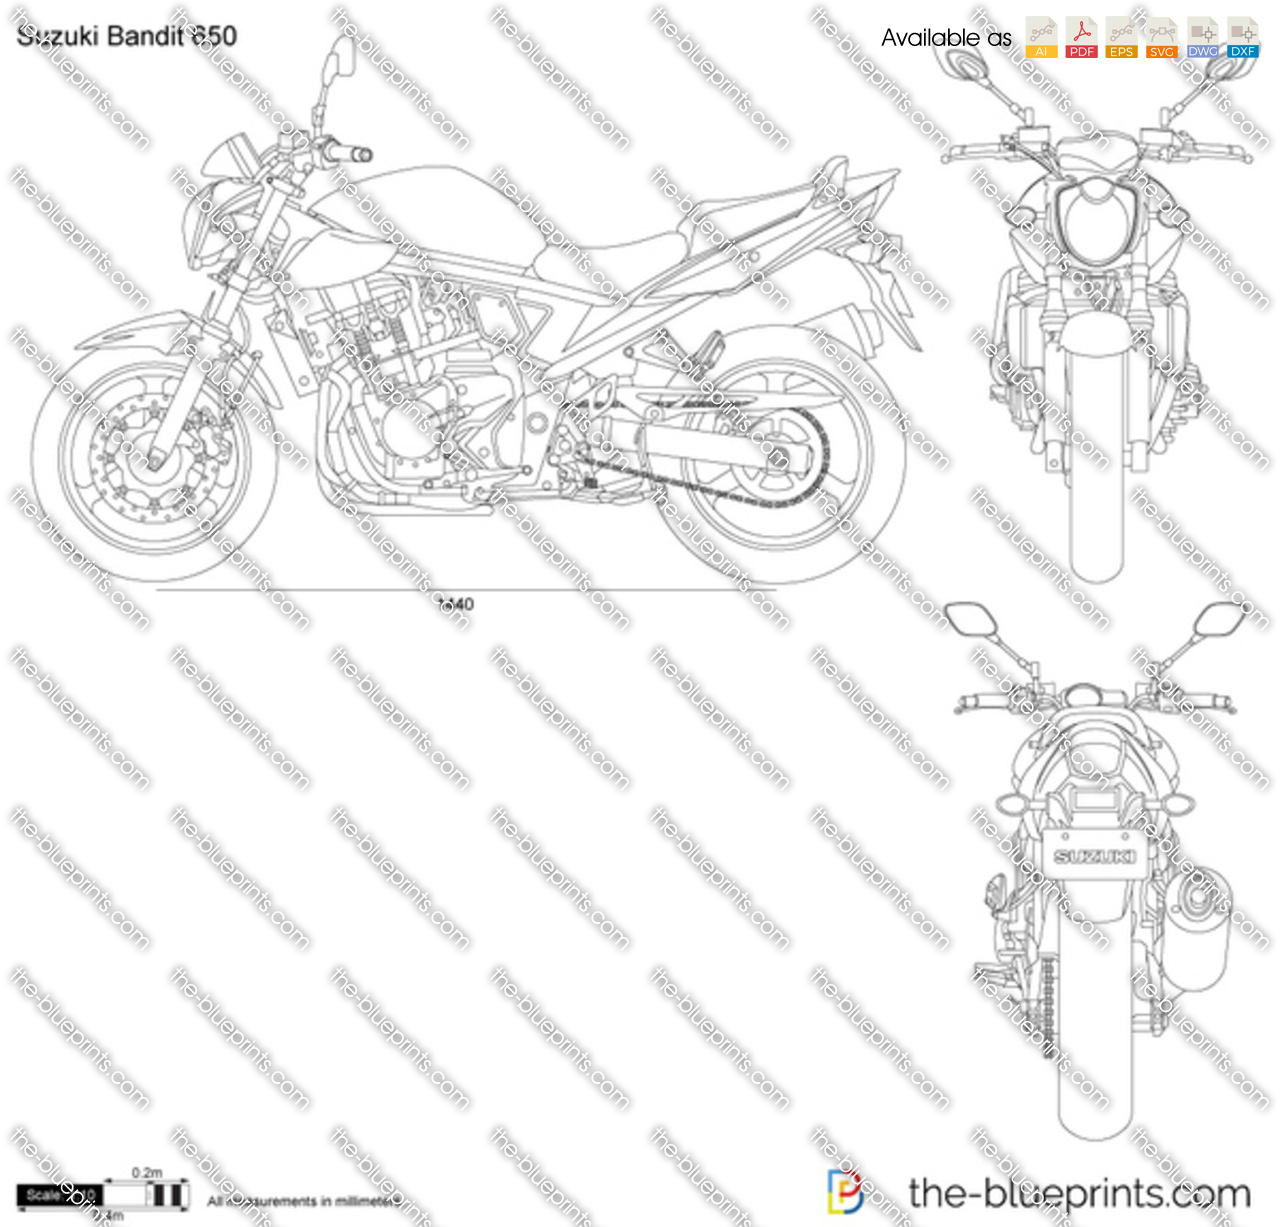 Suzuki Bandit 650 Wiring Diagram on 2007 Gsxr 600 Wiring Diagram